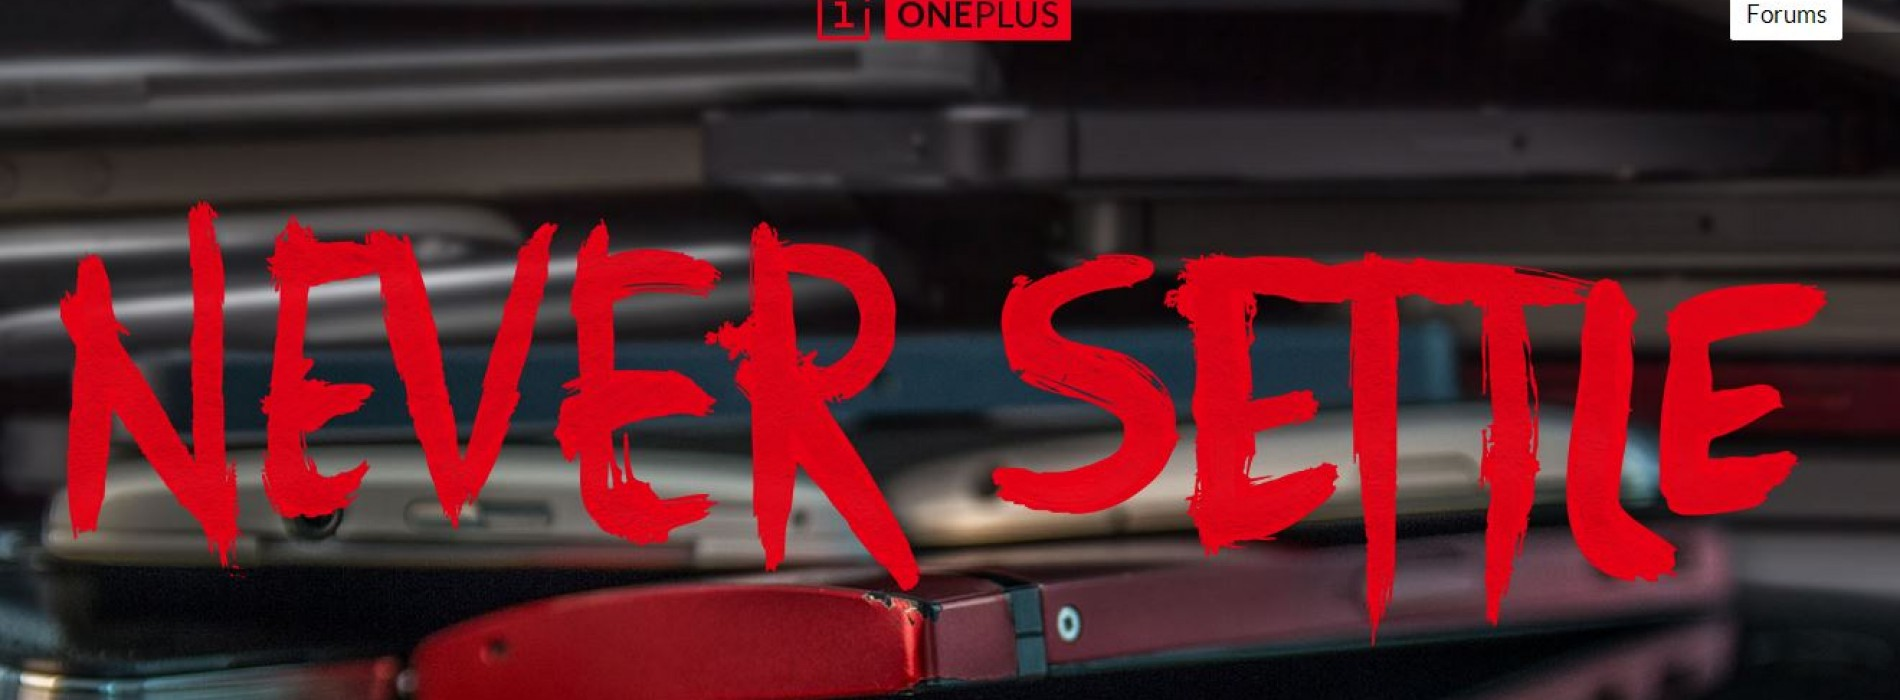 "OnePlus revealed as Cyanogen's new partner, OnePlus One coming ""first half of 2014"""